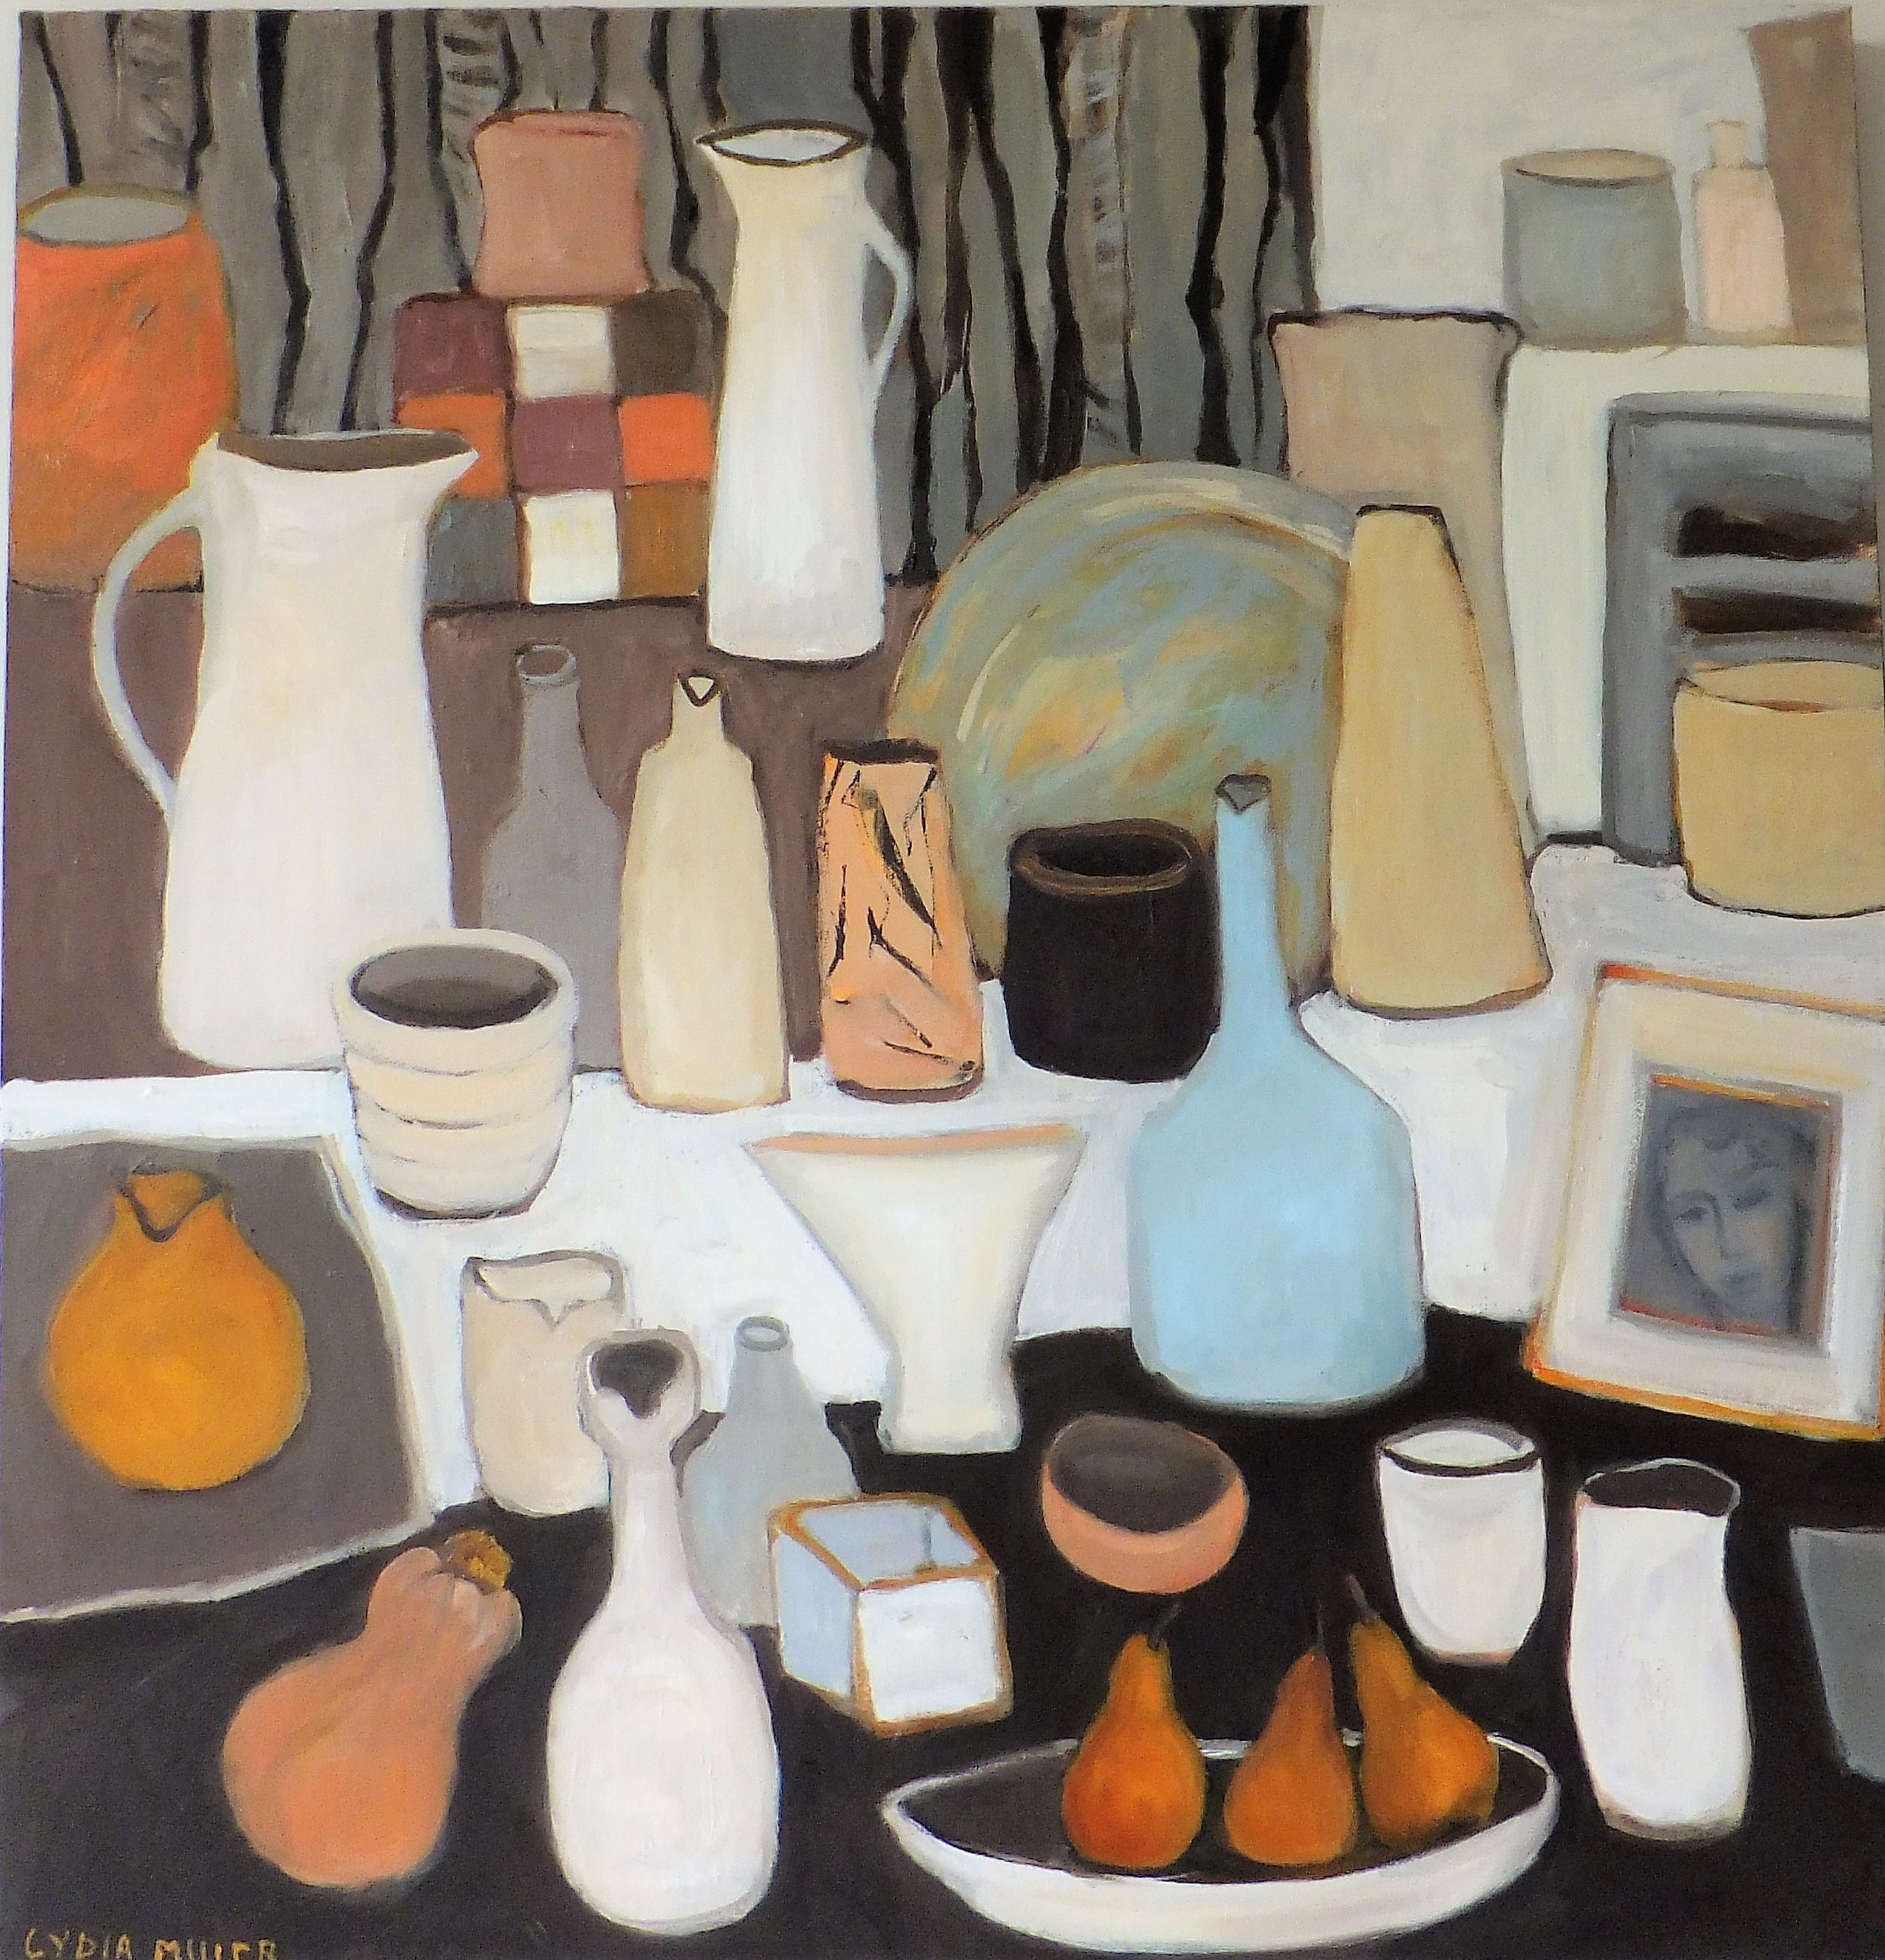 Lydia Miller, Still-Life with two white jugs, 2018, oil on canvas, 76 x 76cm $920.00 AVAILABLE contact info@gallery139.com.au